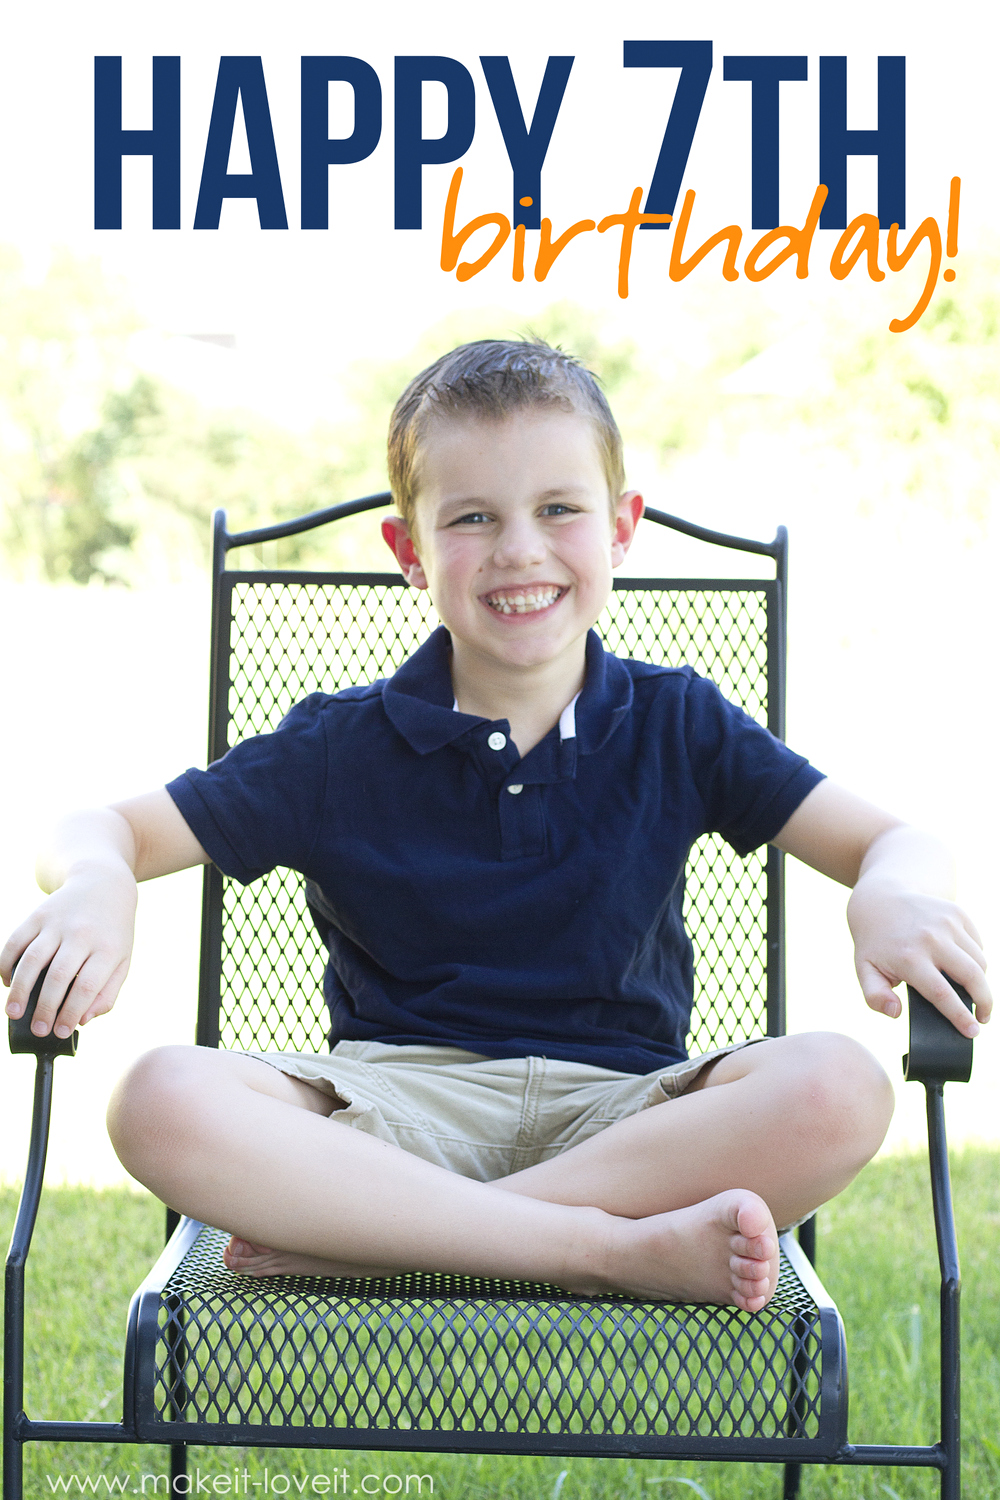 My little connor turns a big 7!!!